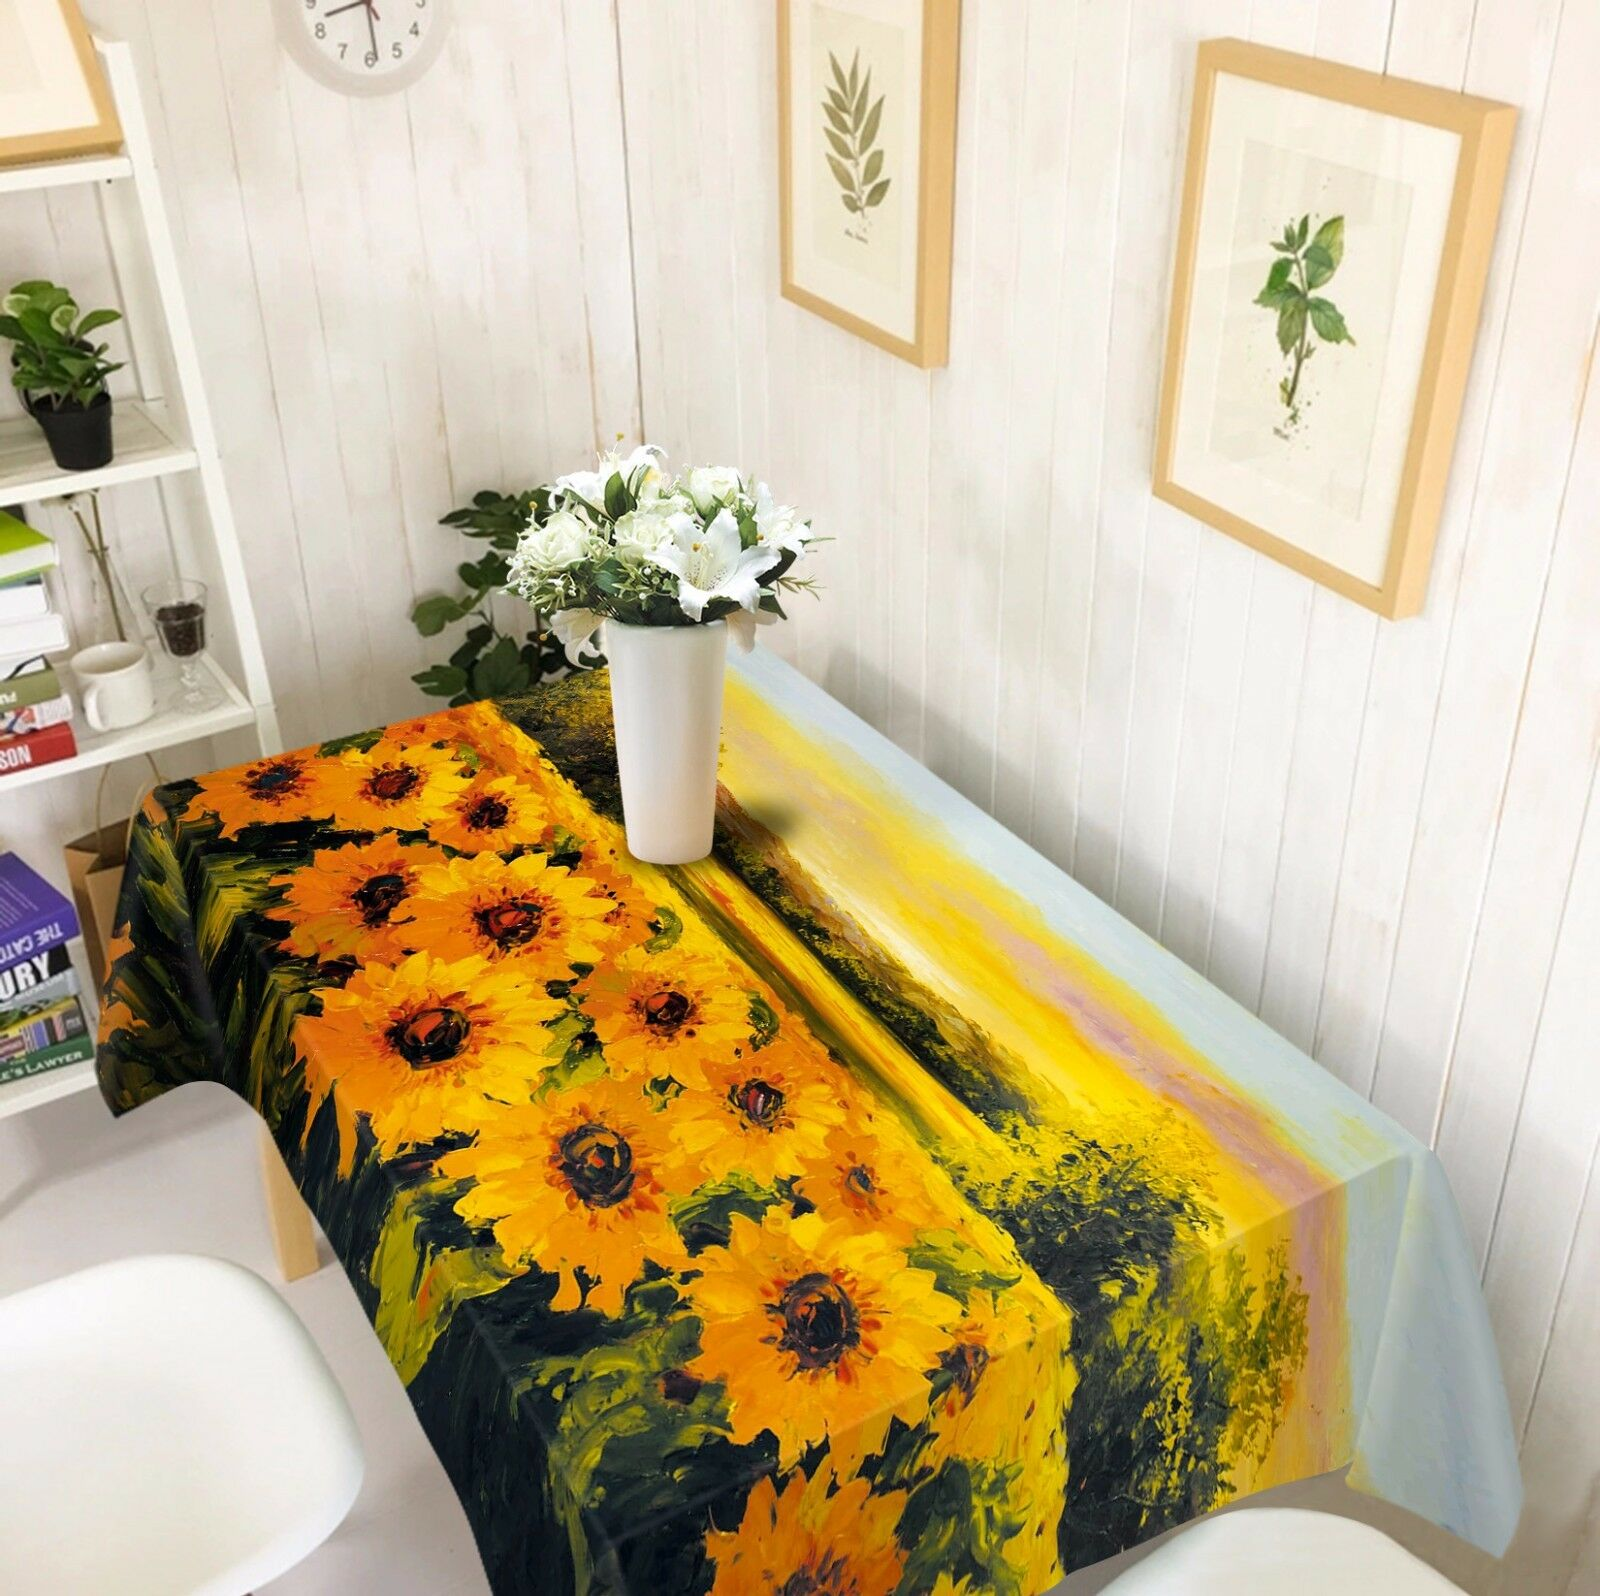 3D Sunflower 4 Tablecloth Table Cover Cloth Birthday Party AJ WALLPAPER UK Lemon